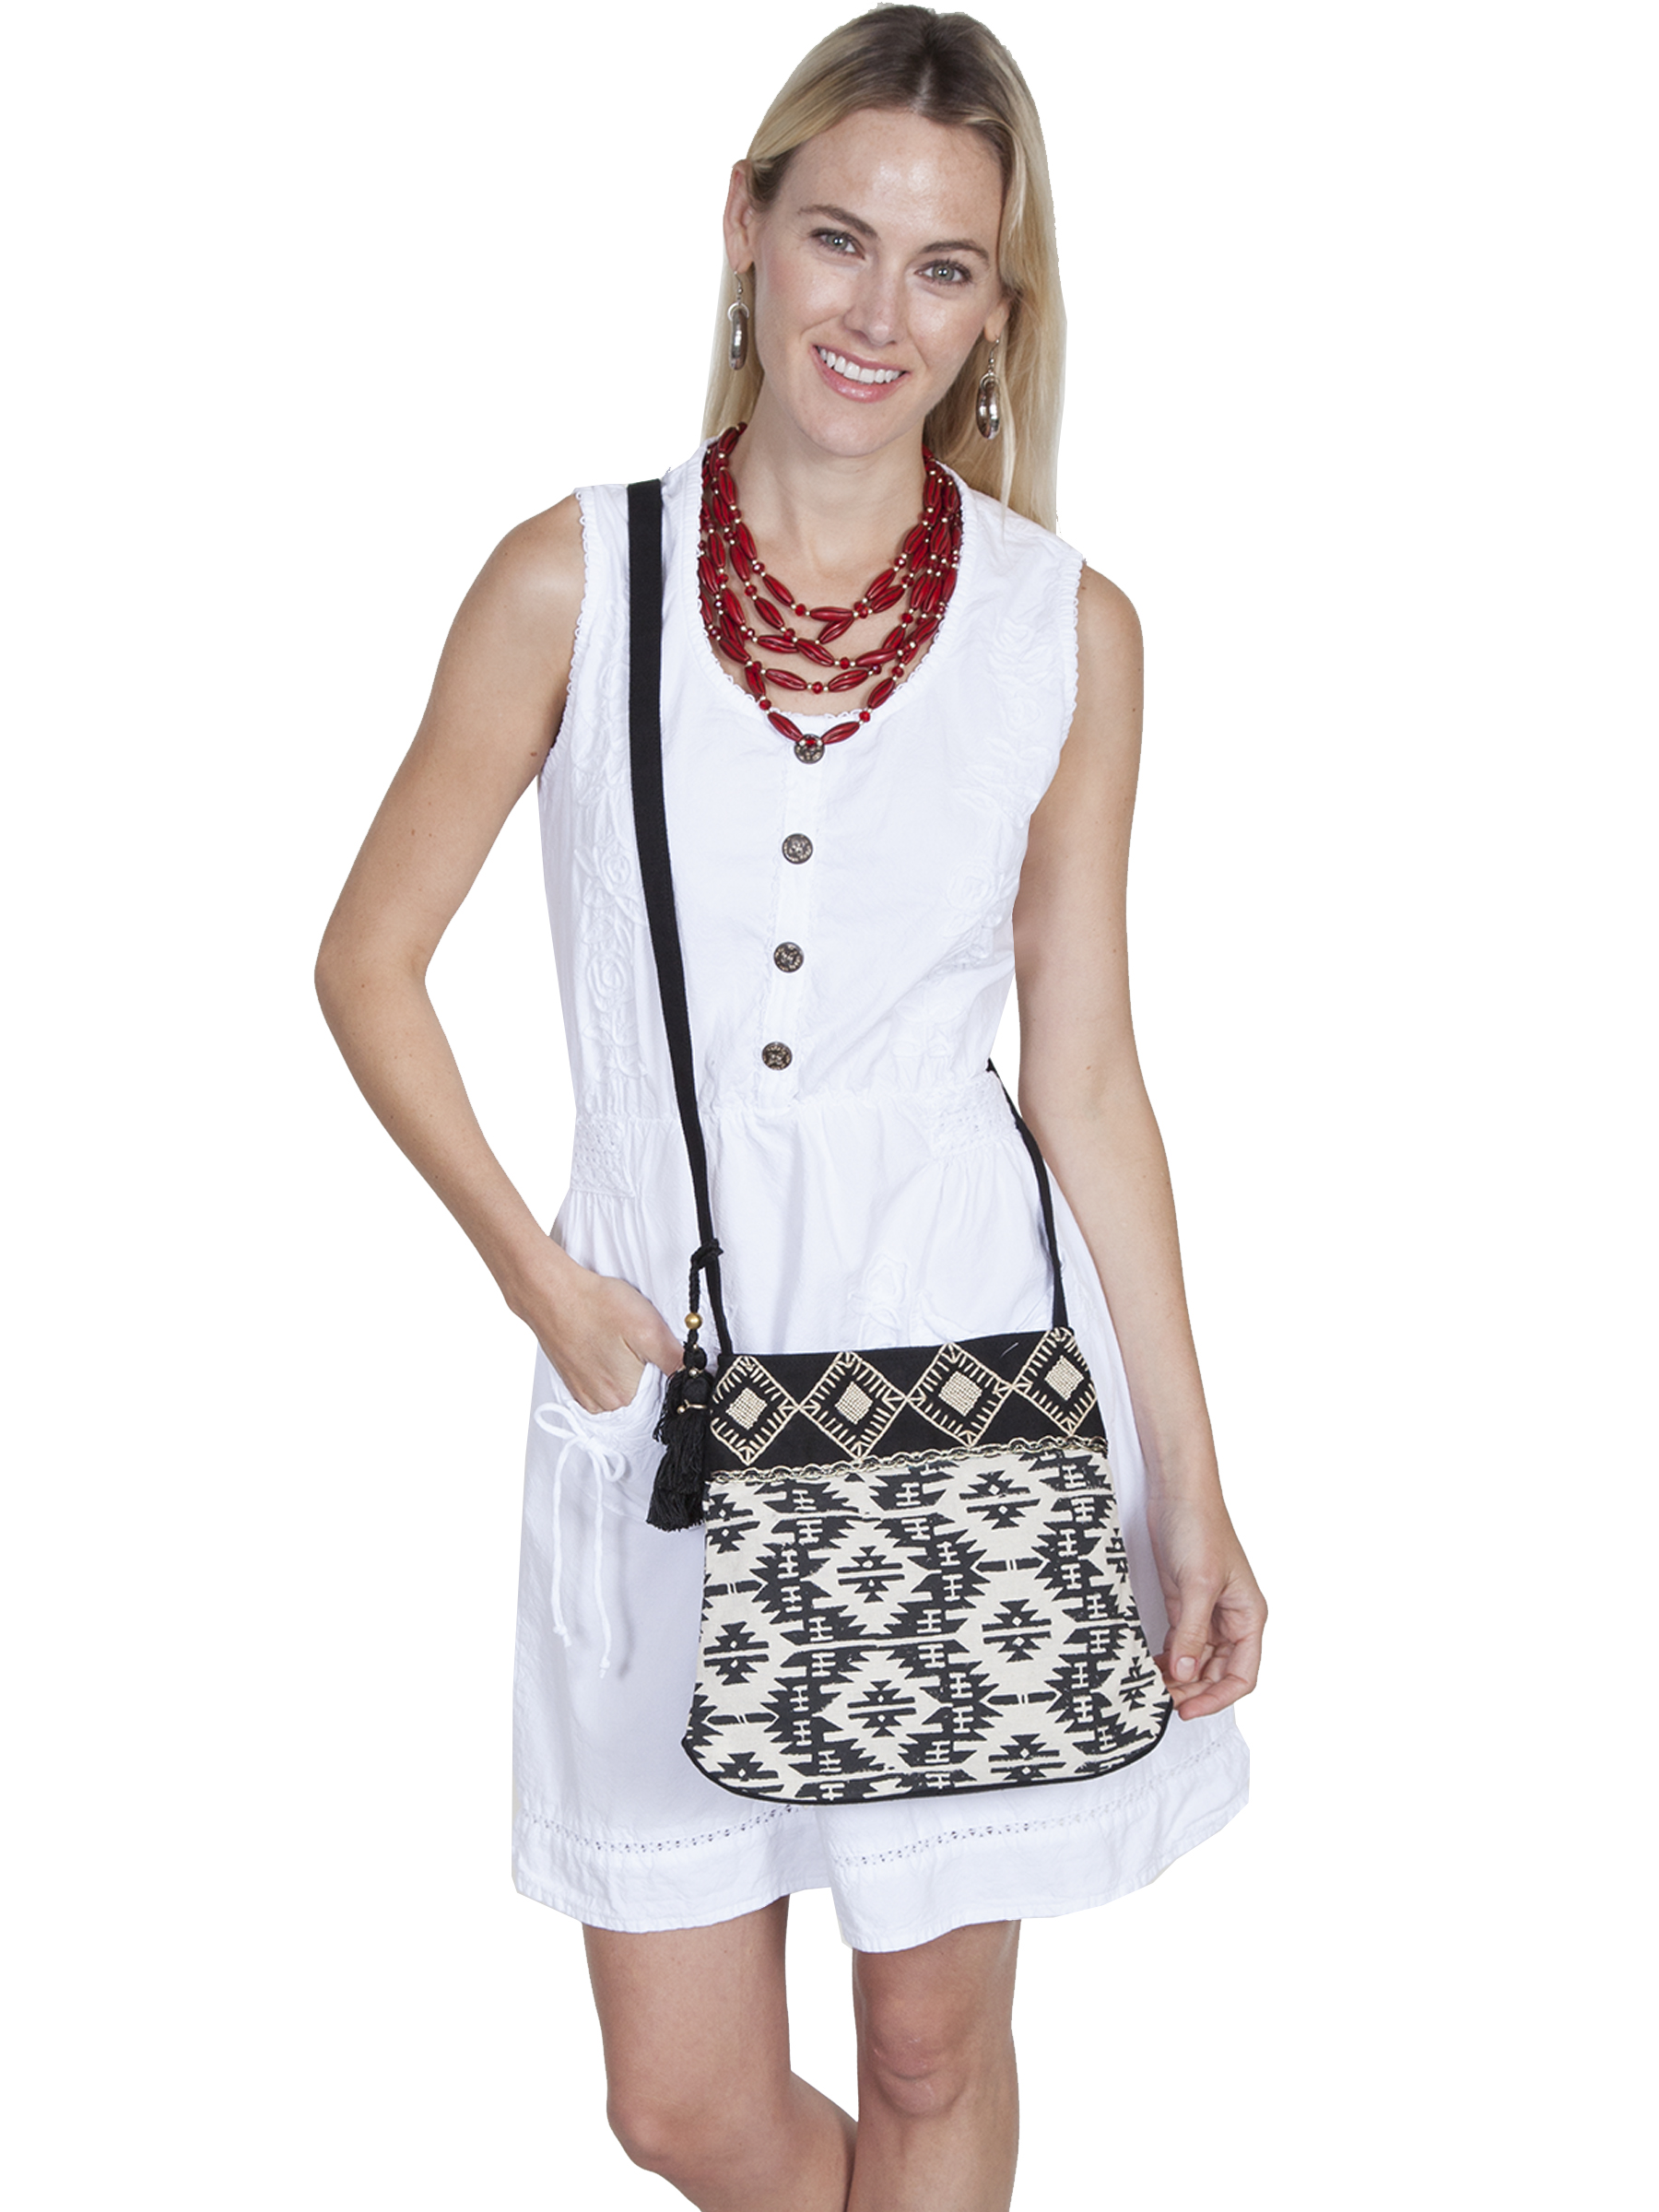 Black & white crossbody handbag with a geometric aztec print